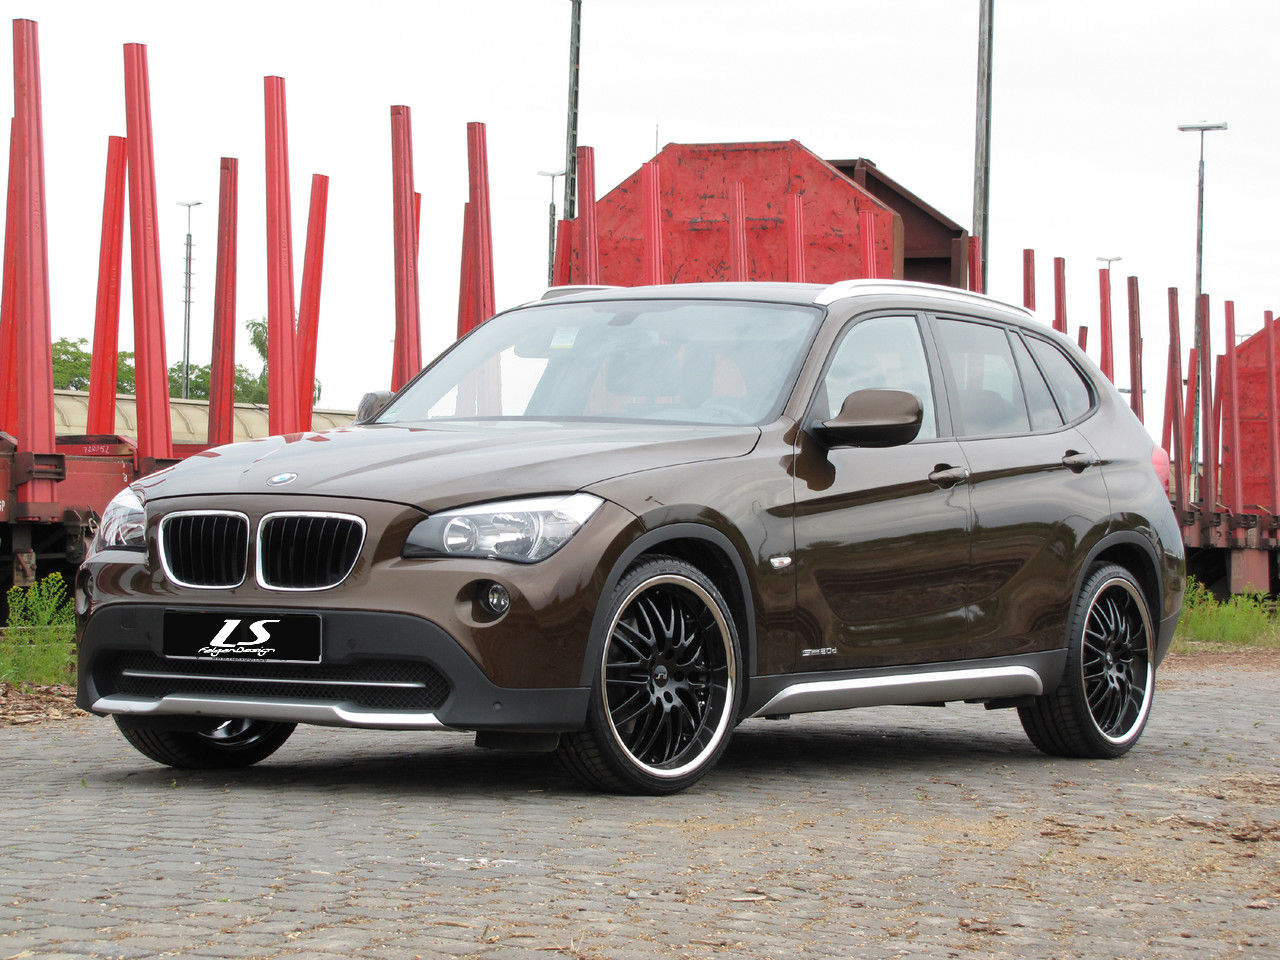 news alufelgen bmw x1 mit 20 ls sport felgen. Black Bedroom Furniture Sets. Home Design Ideas